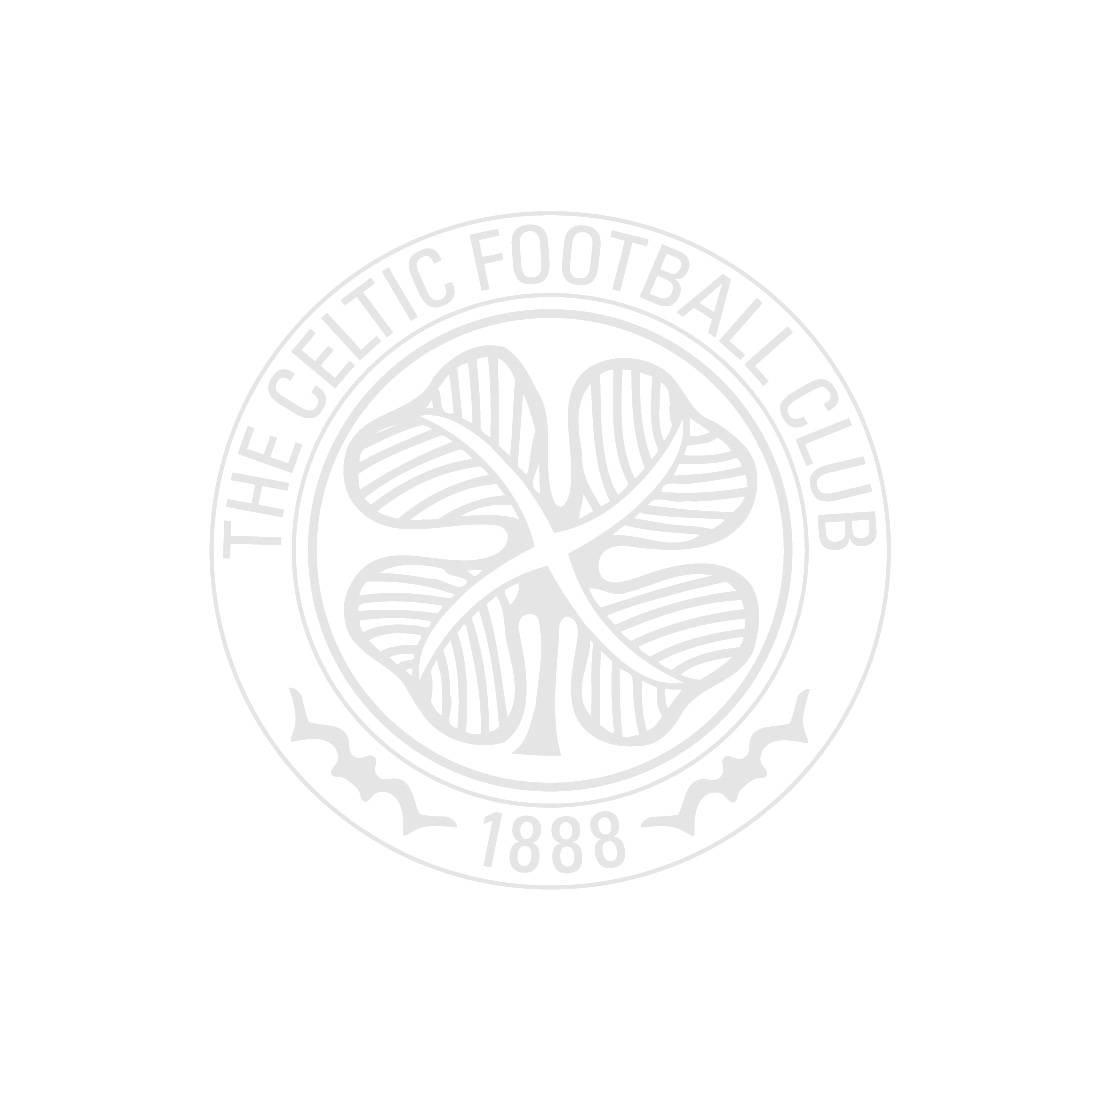 The Official Celtic Calendar 2020